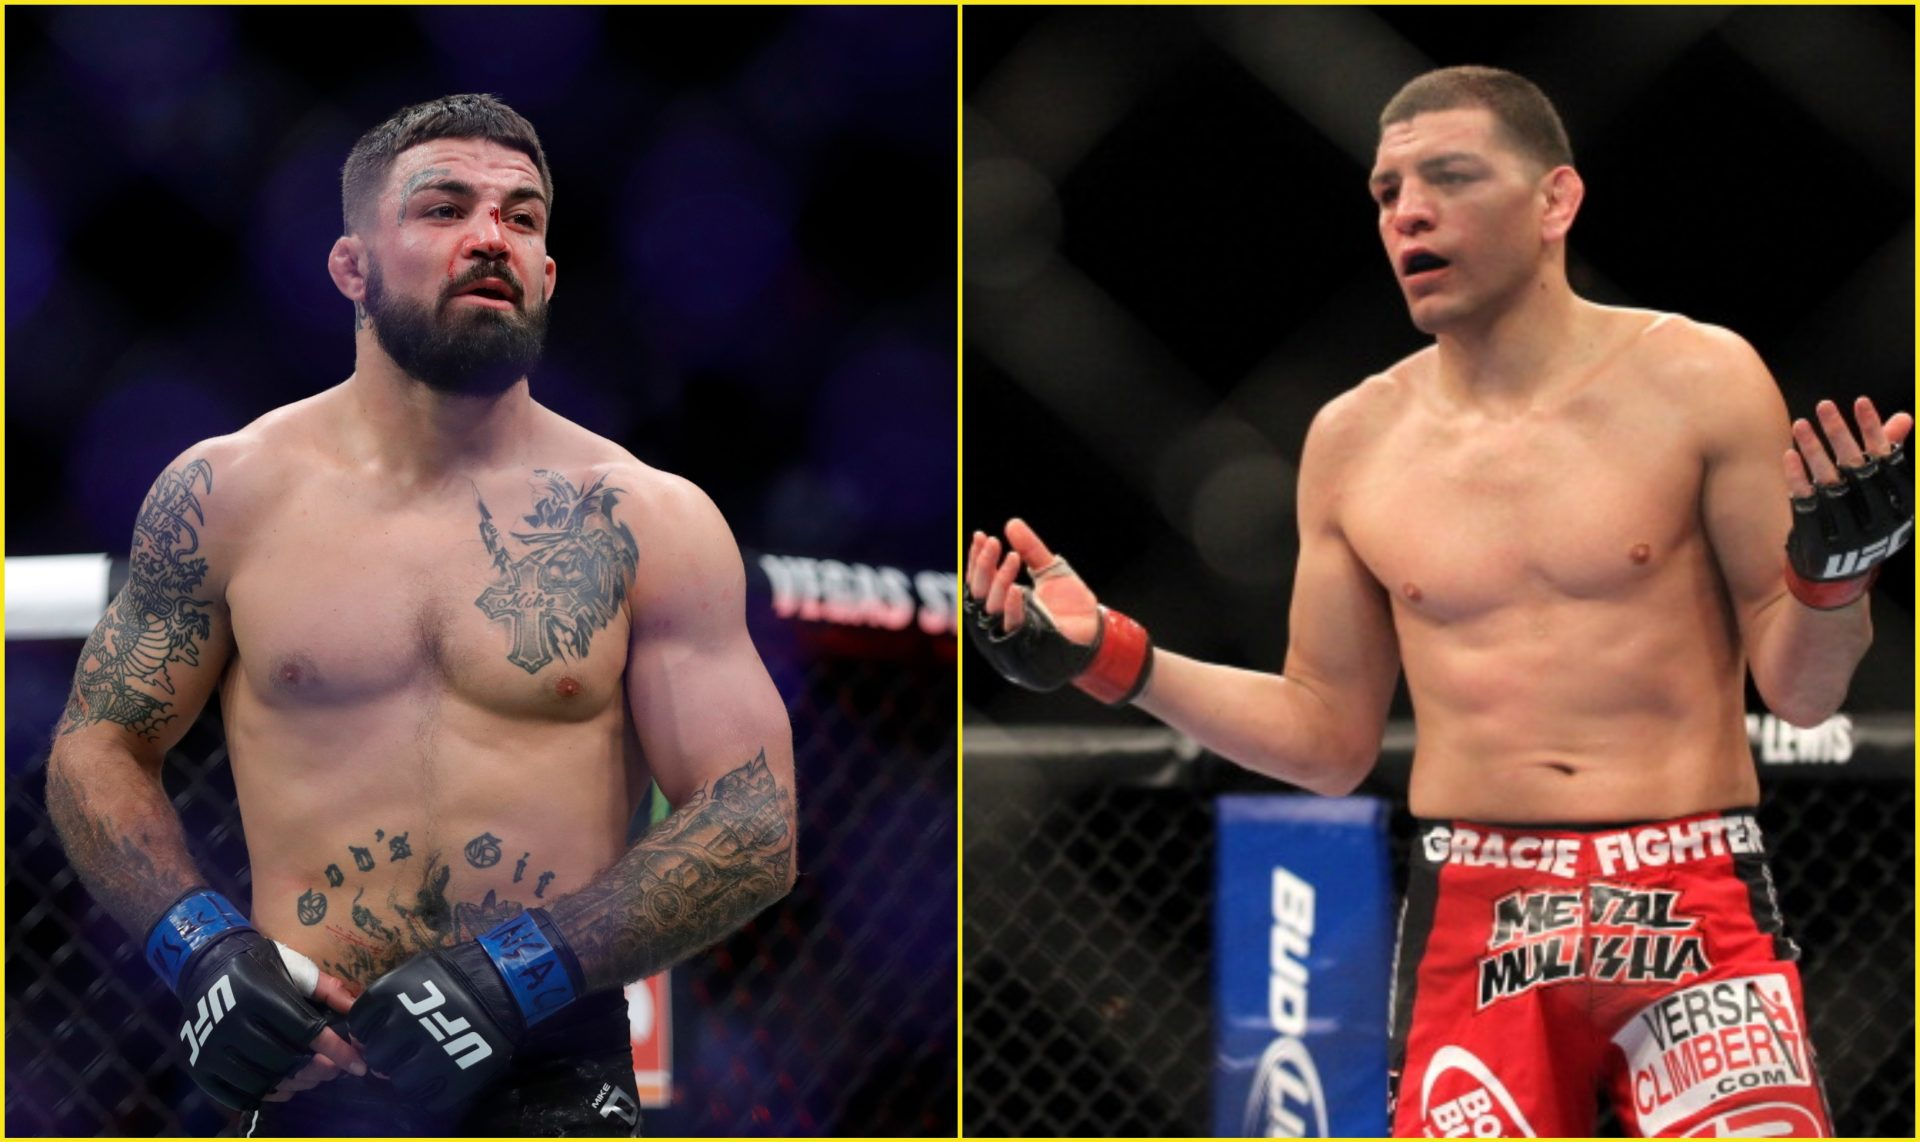 Mike Perry is the latest to call out Nick Diaz - Perry